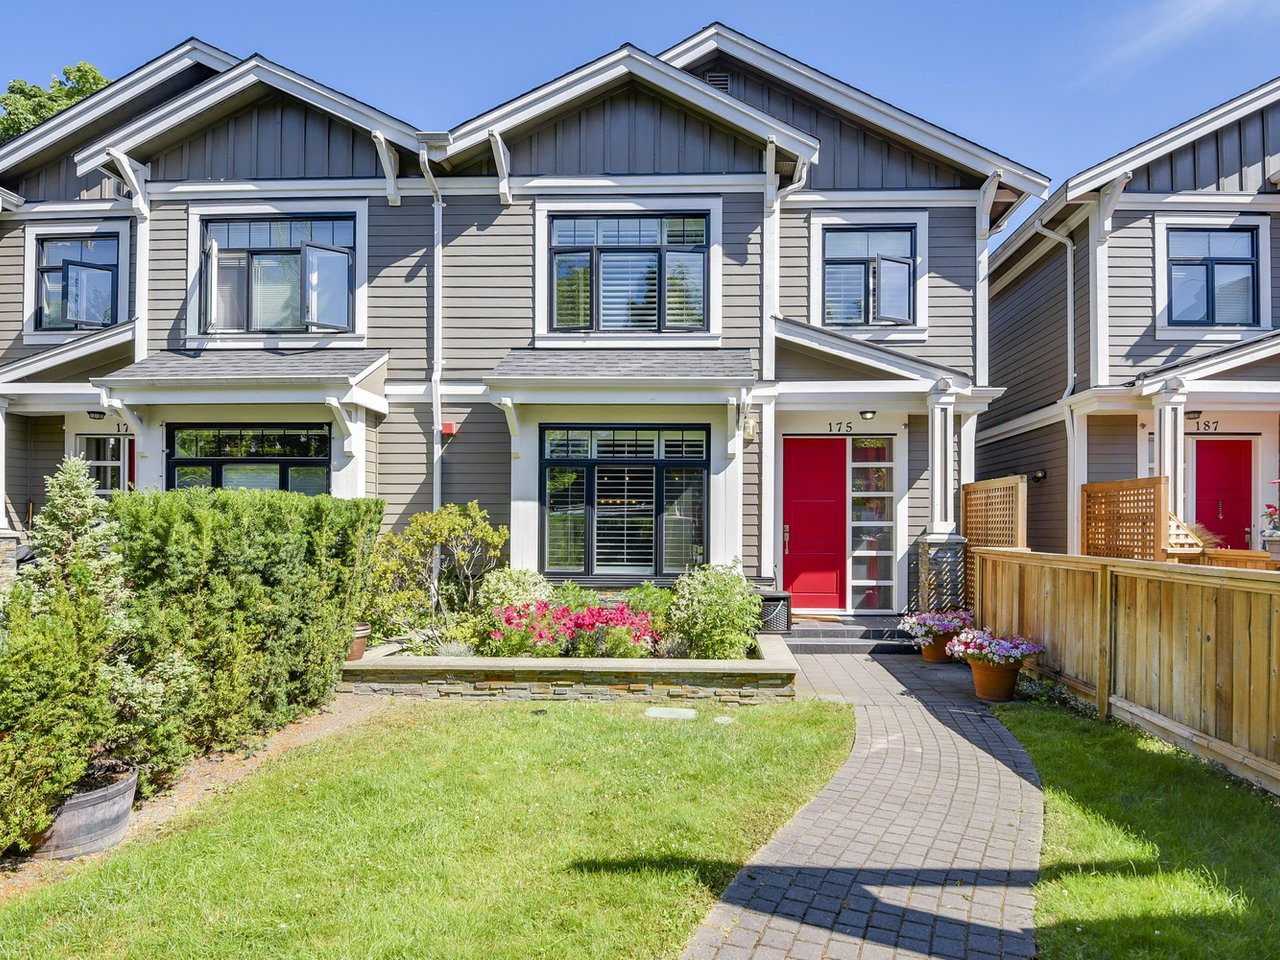 175 East 17th Avenue Vancouver  R2189236  2 Bedroom + Den Townhouse   $1,348,000